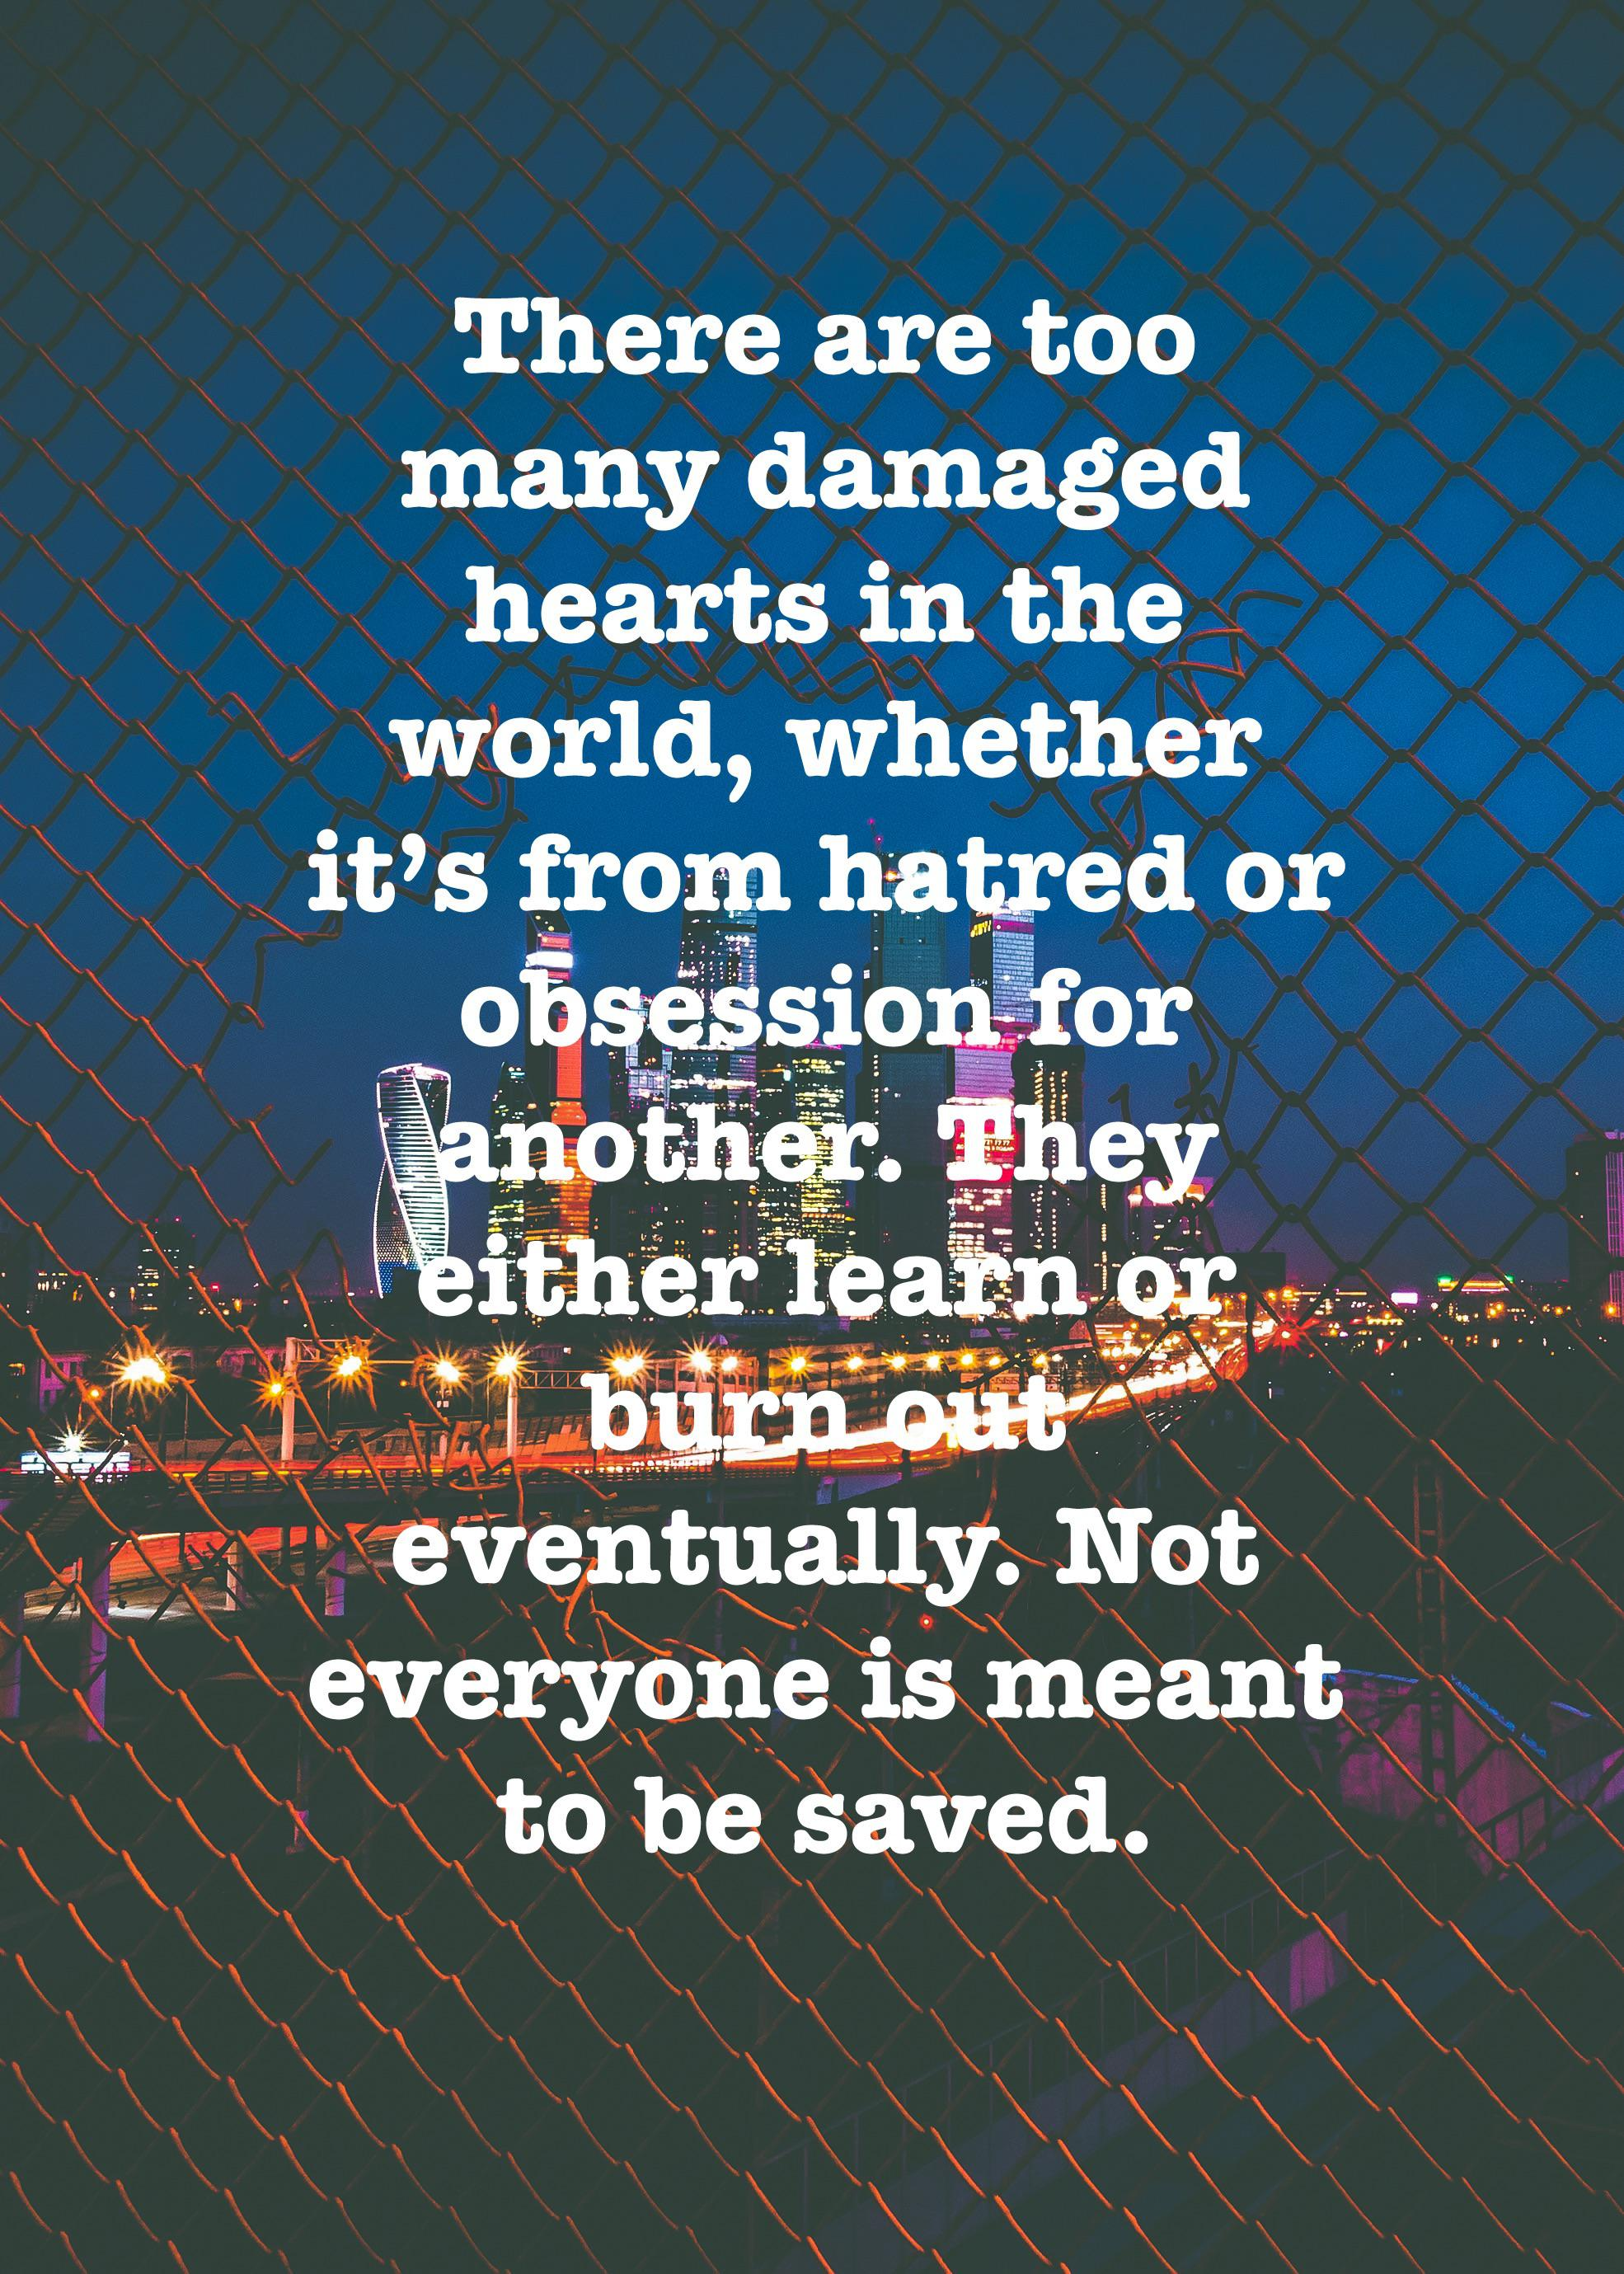 There are too many damaged hearts in the world, whether it's from hatred or obsession for another. They either learn or burn out eventually. Not everyone is meant to be saved. (1970 x 2758)